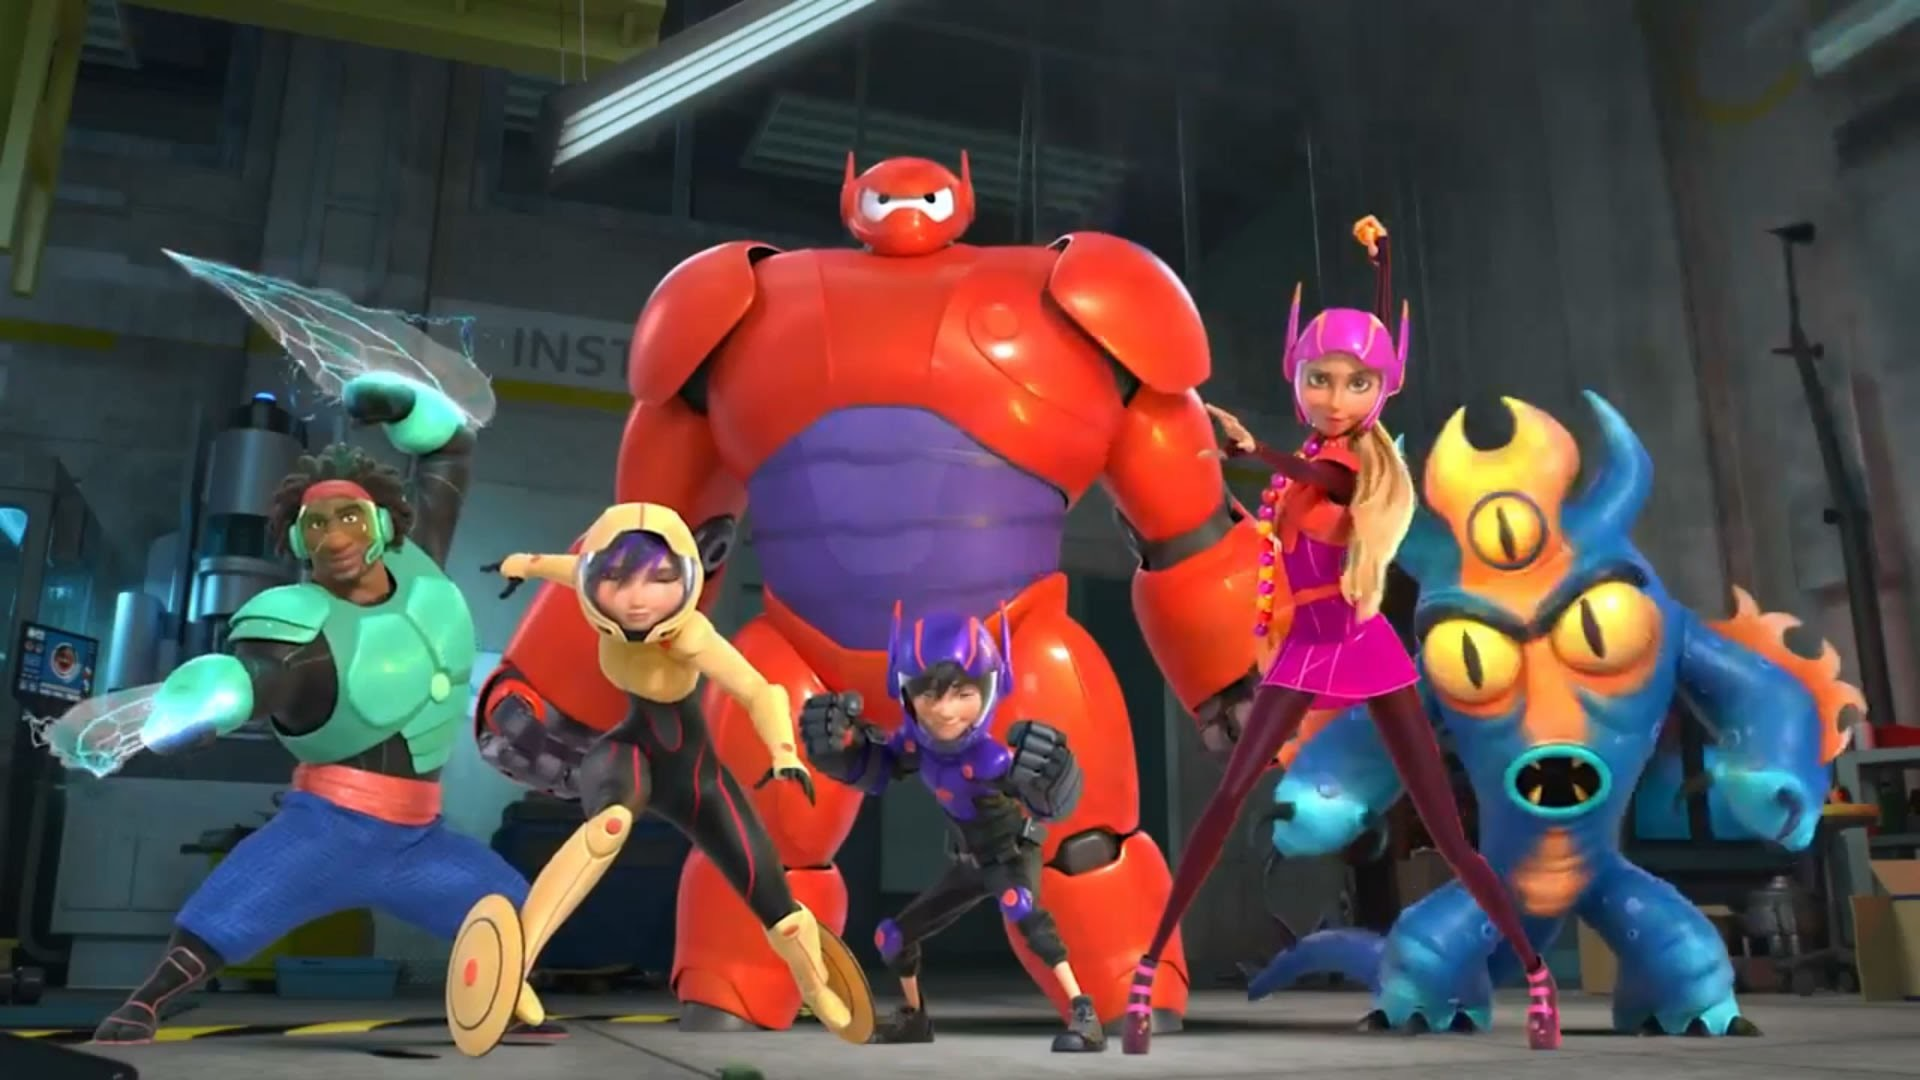 1920x1080 Big Hero 6 Hiro And Baymax By Batincinardizayn Android Wallpapers For Free